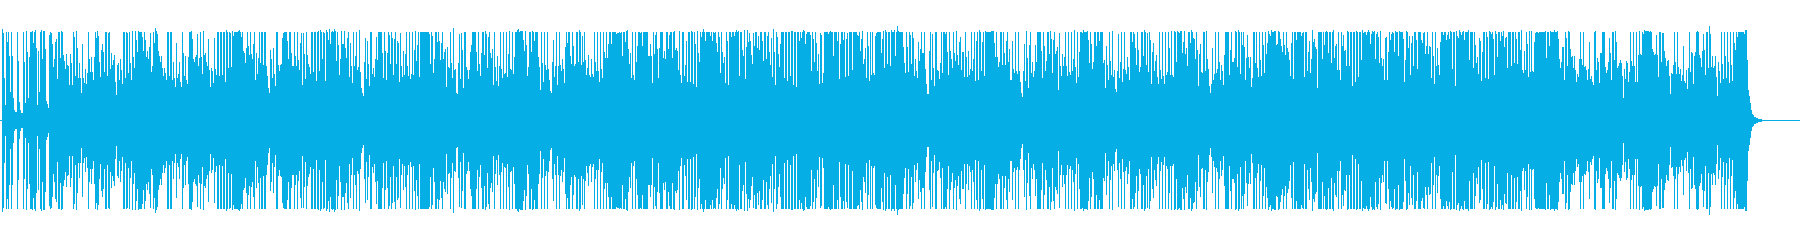 The synth sound is mysterious BGM's reproduced waveform